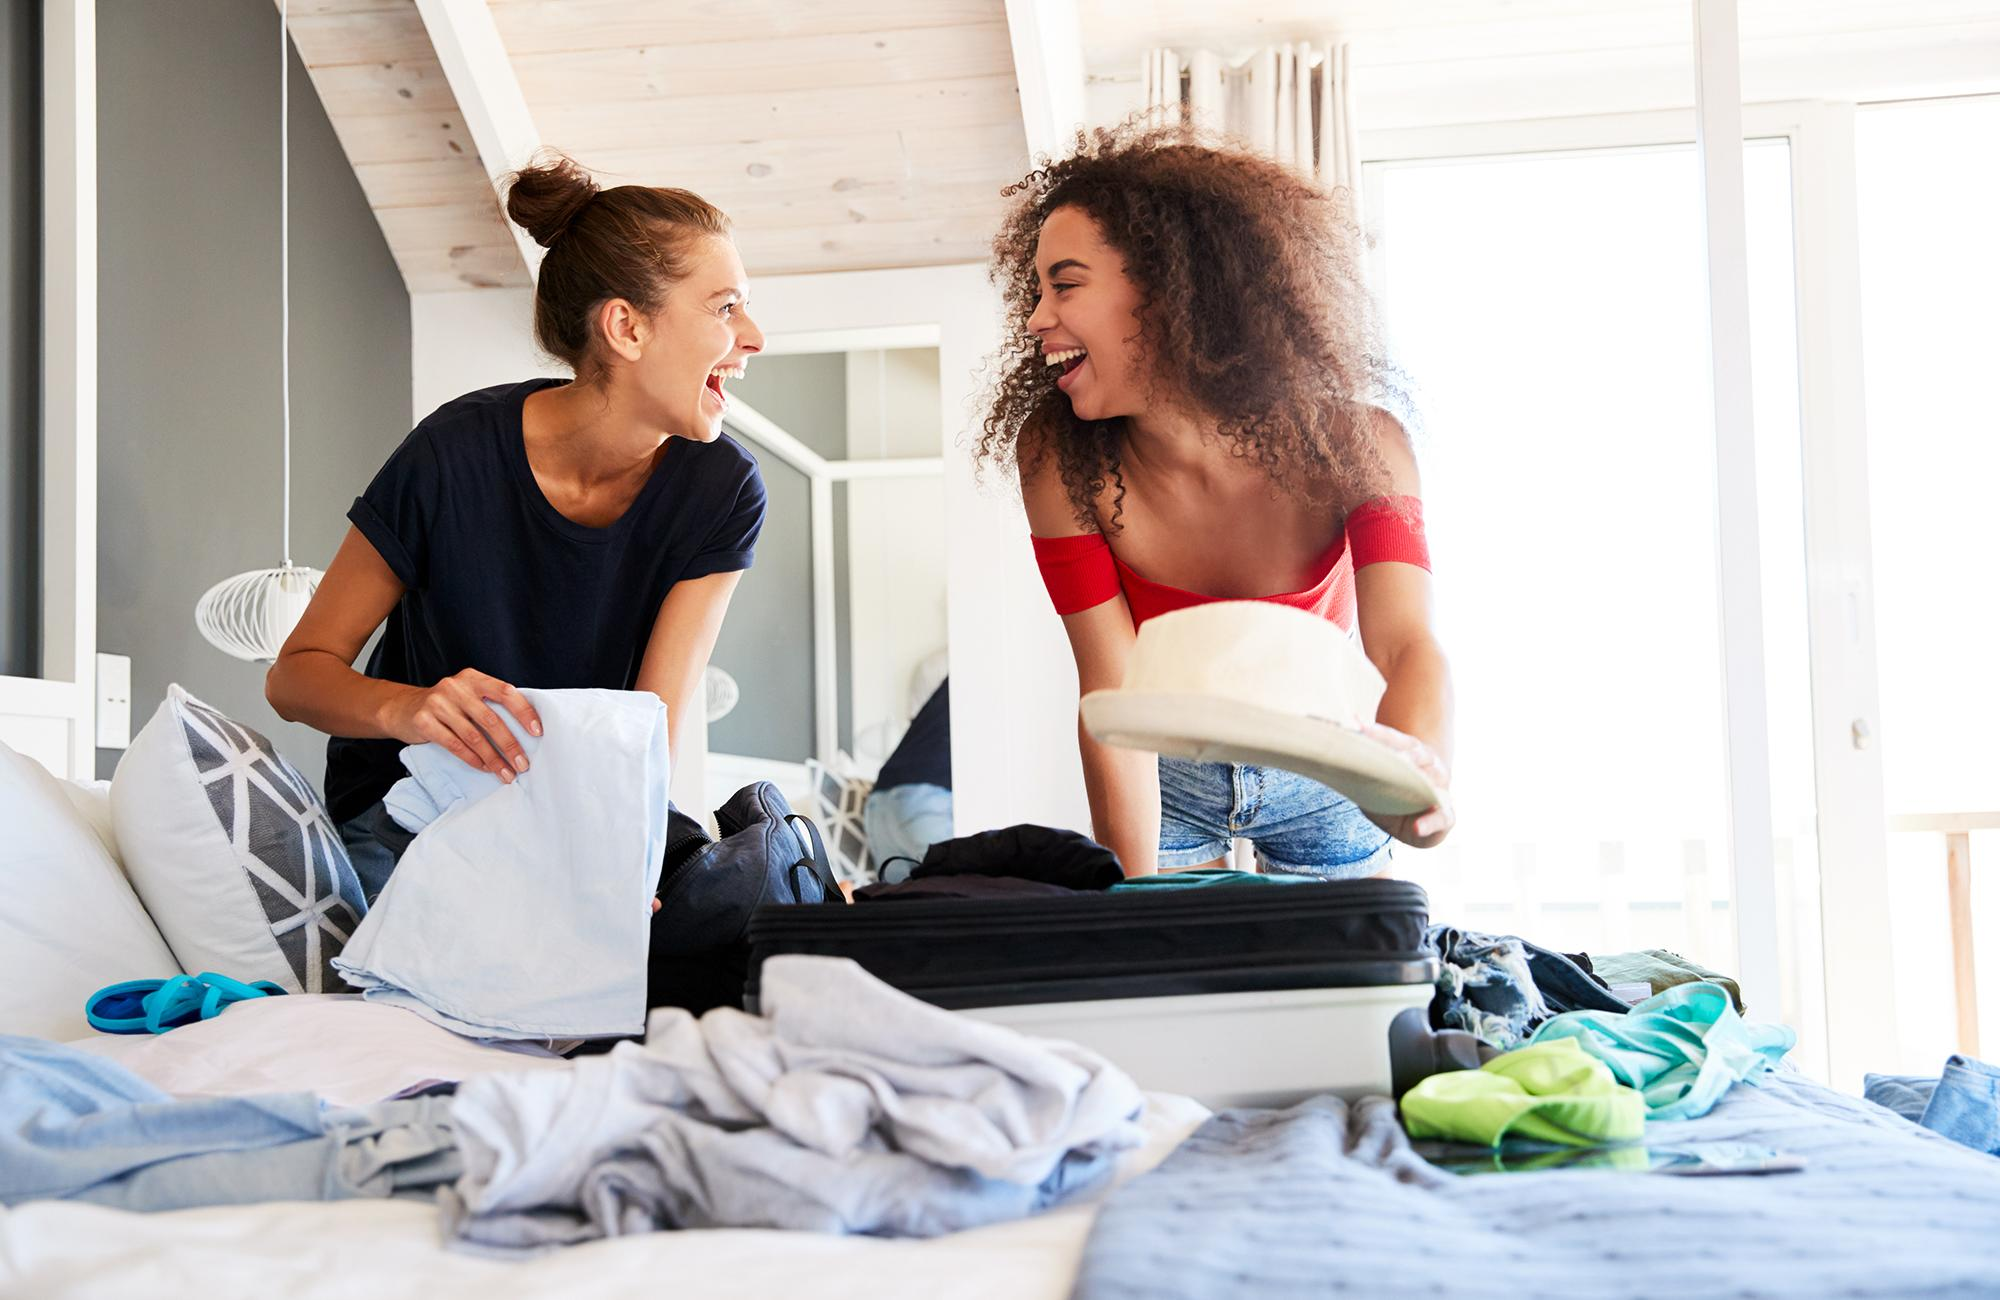 10 Hacks to Maximize Your Carry-On Space